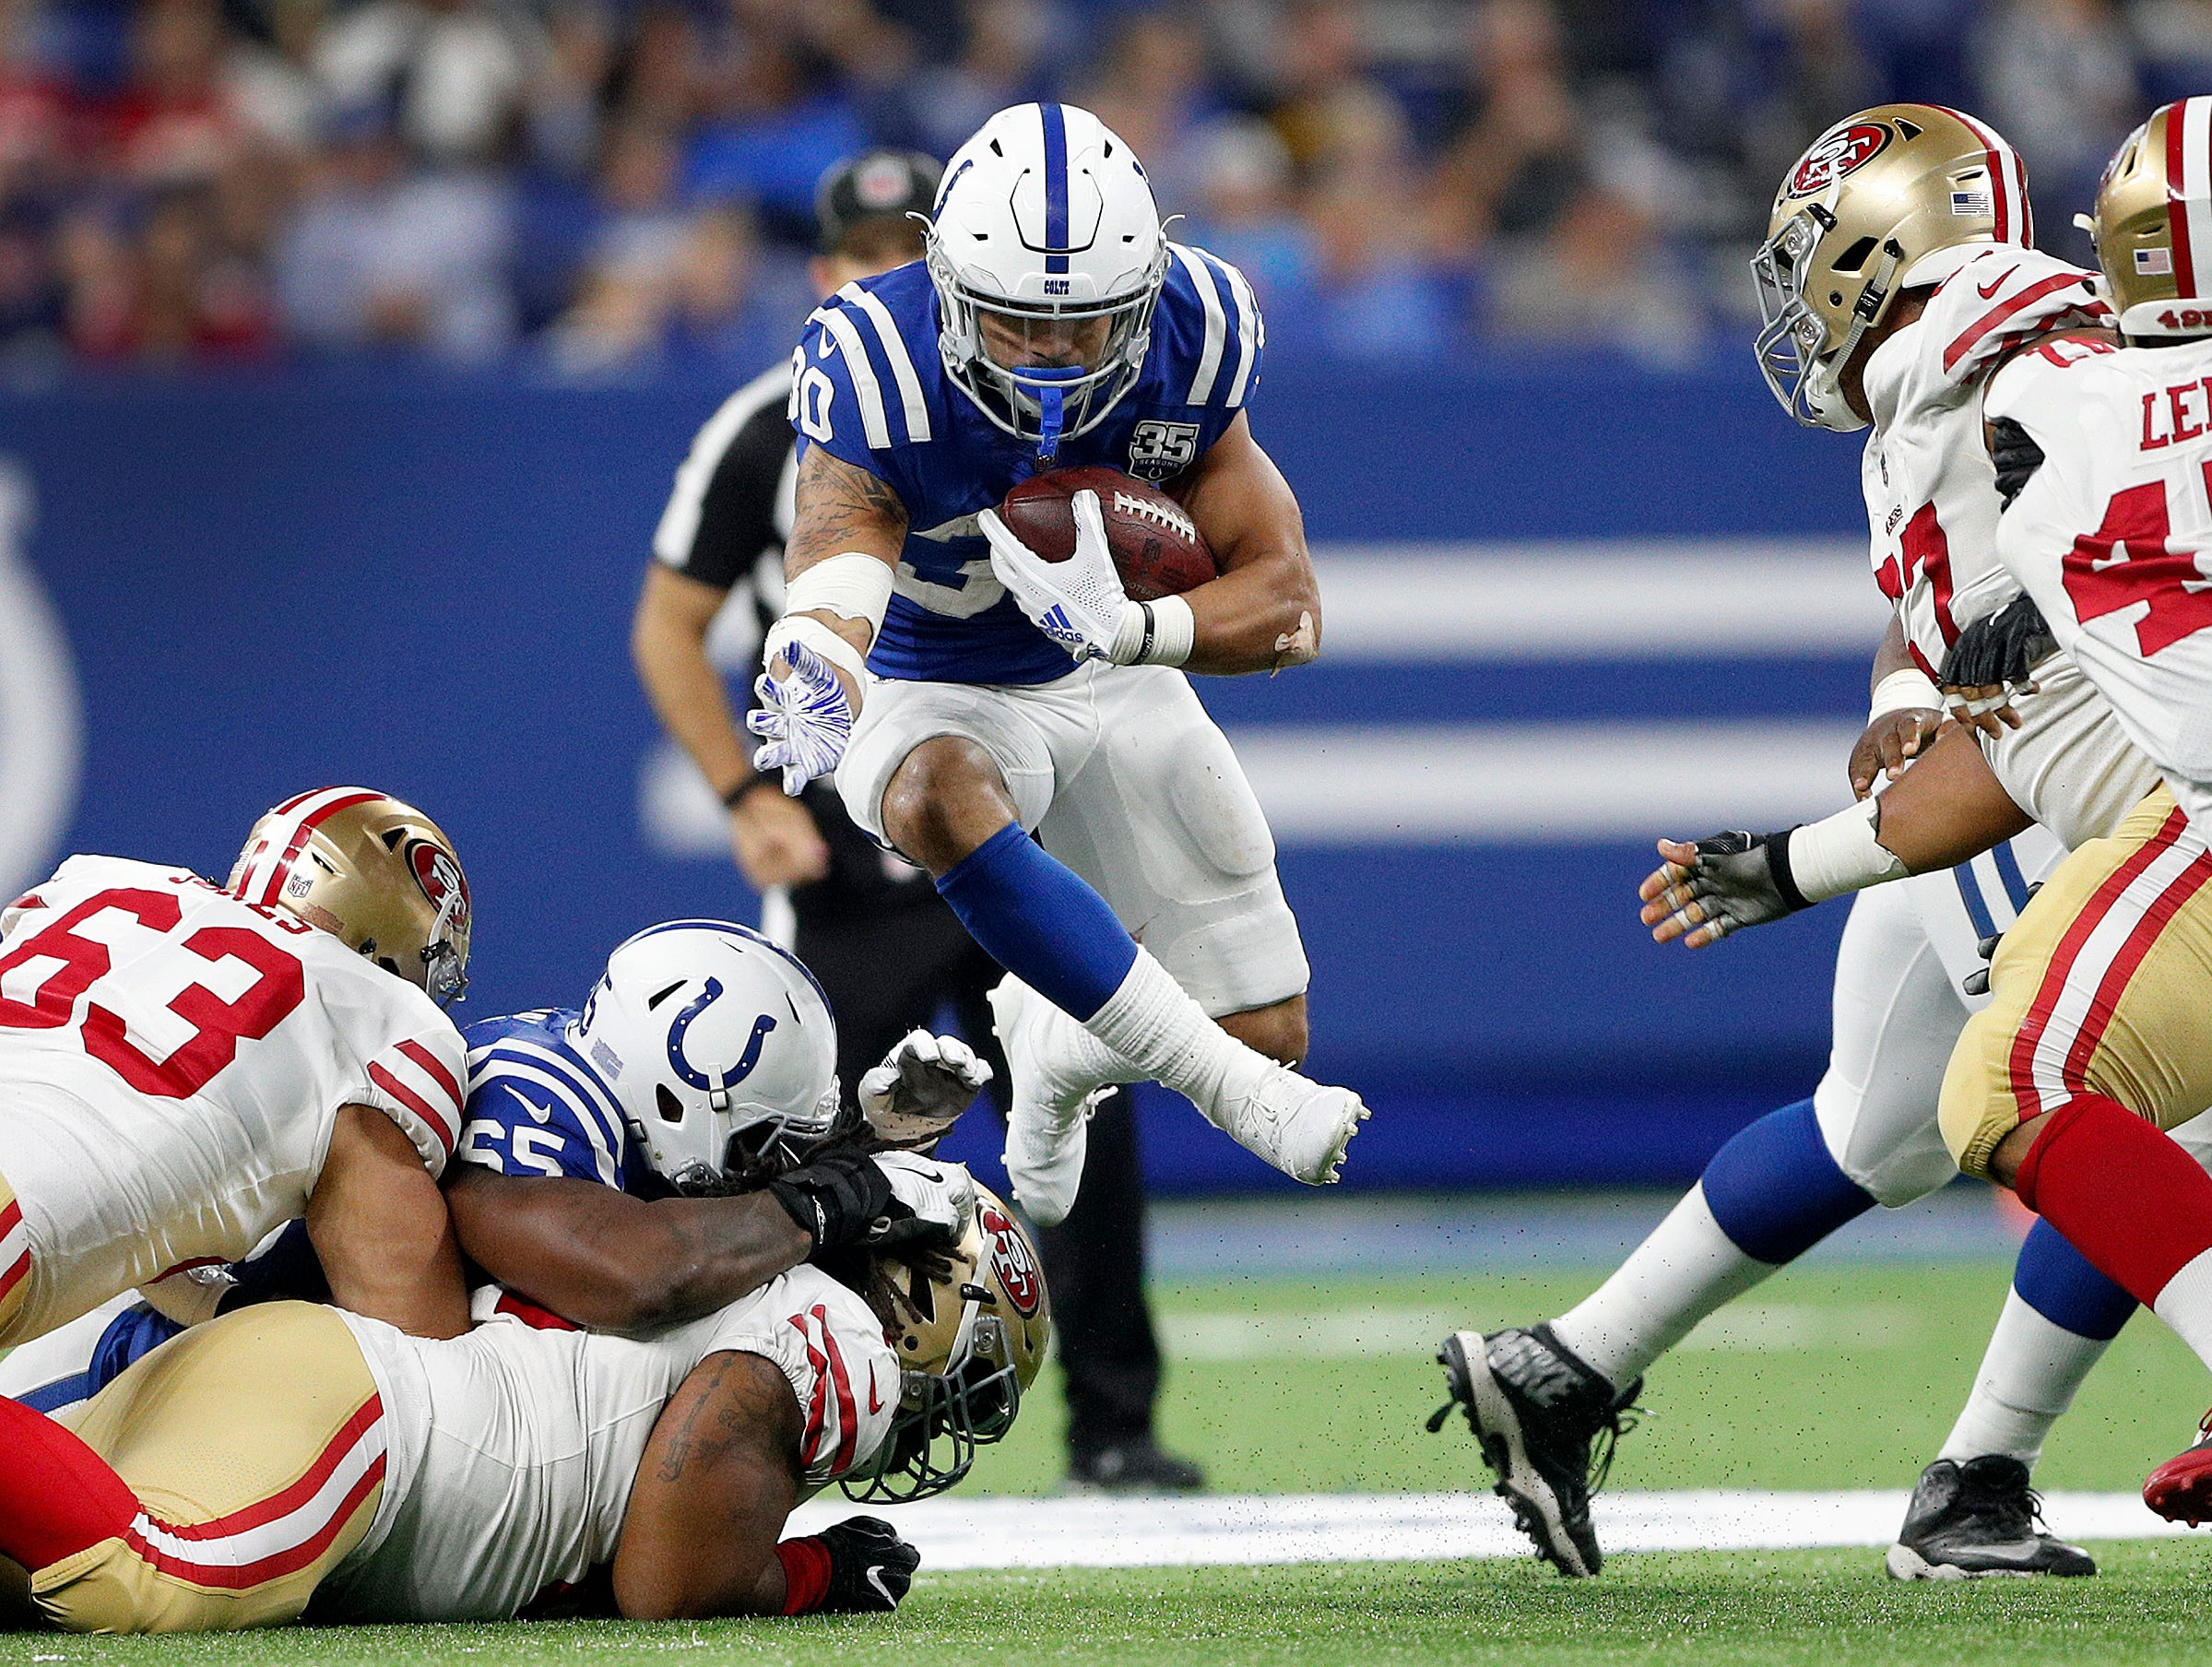 Indianapolis Colts running back Jordan Wilkins (30) jumps over linemen in the second half of their preseason football game at Lucas Oil Stadium Saturday, August 25, 2018. The Colts defeated the 49ers 23-17.